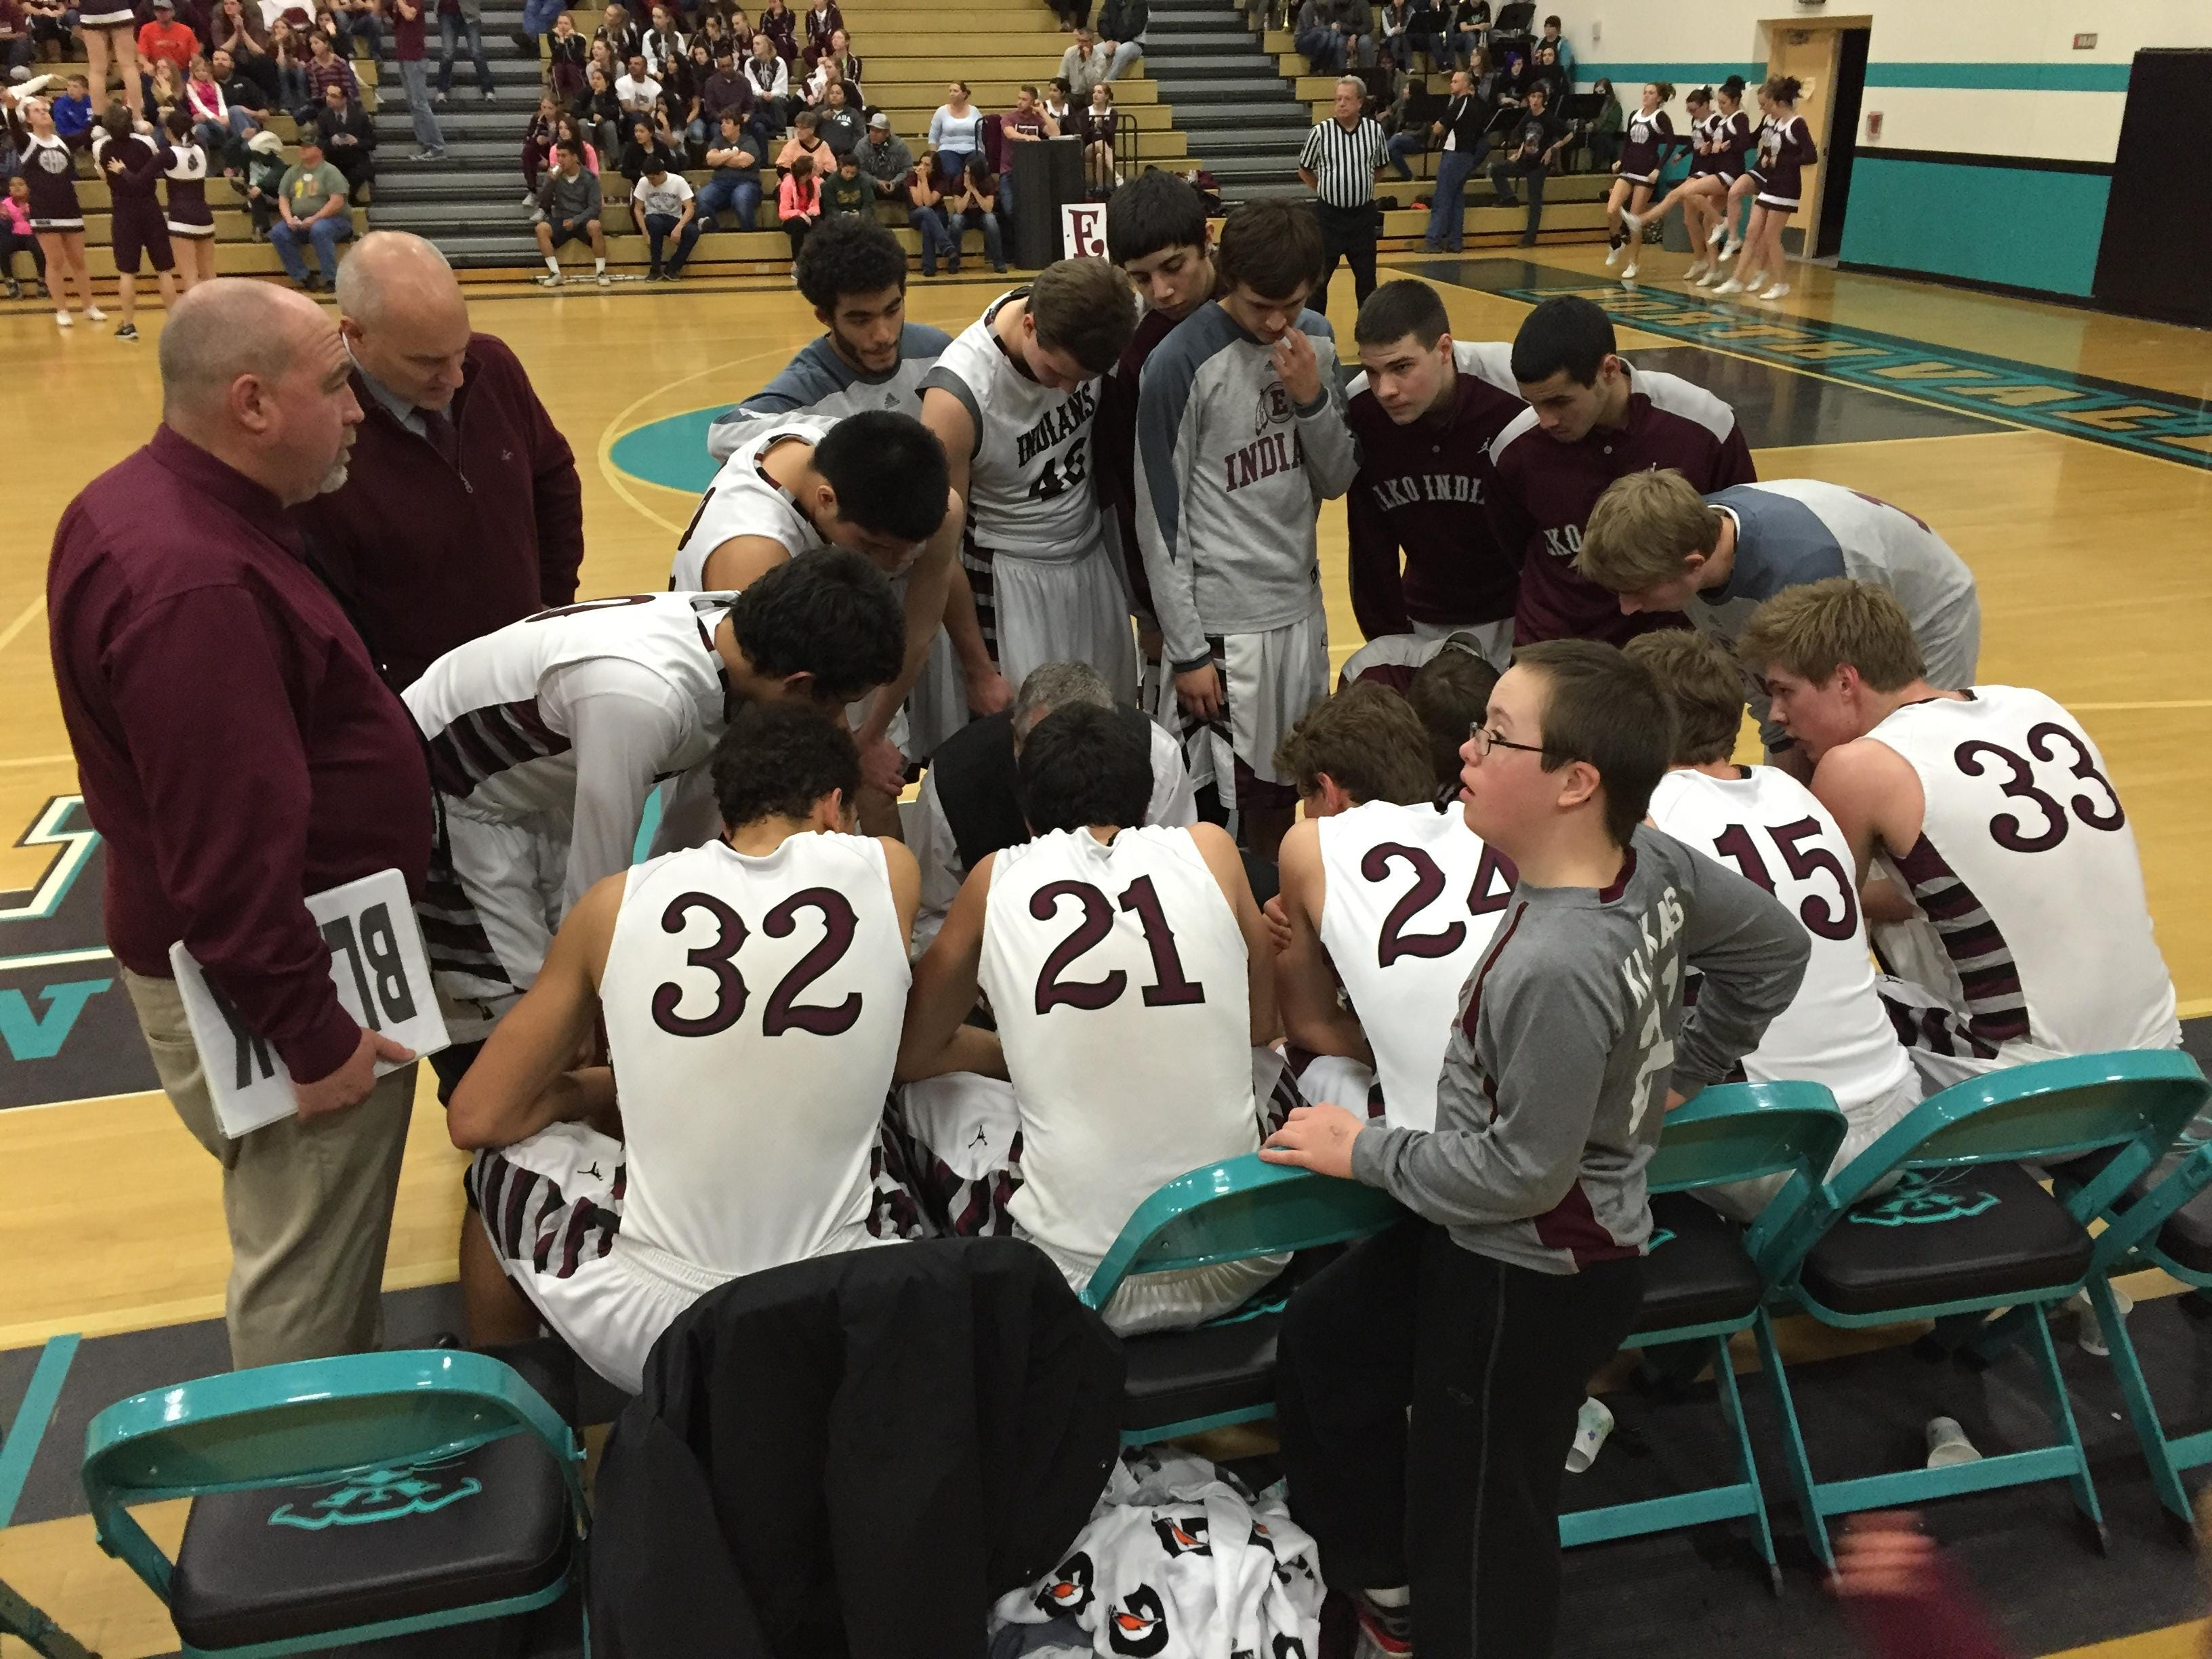 Elko players and coaches discuss their next move during a time-out in Friday's game.